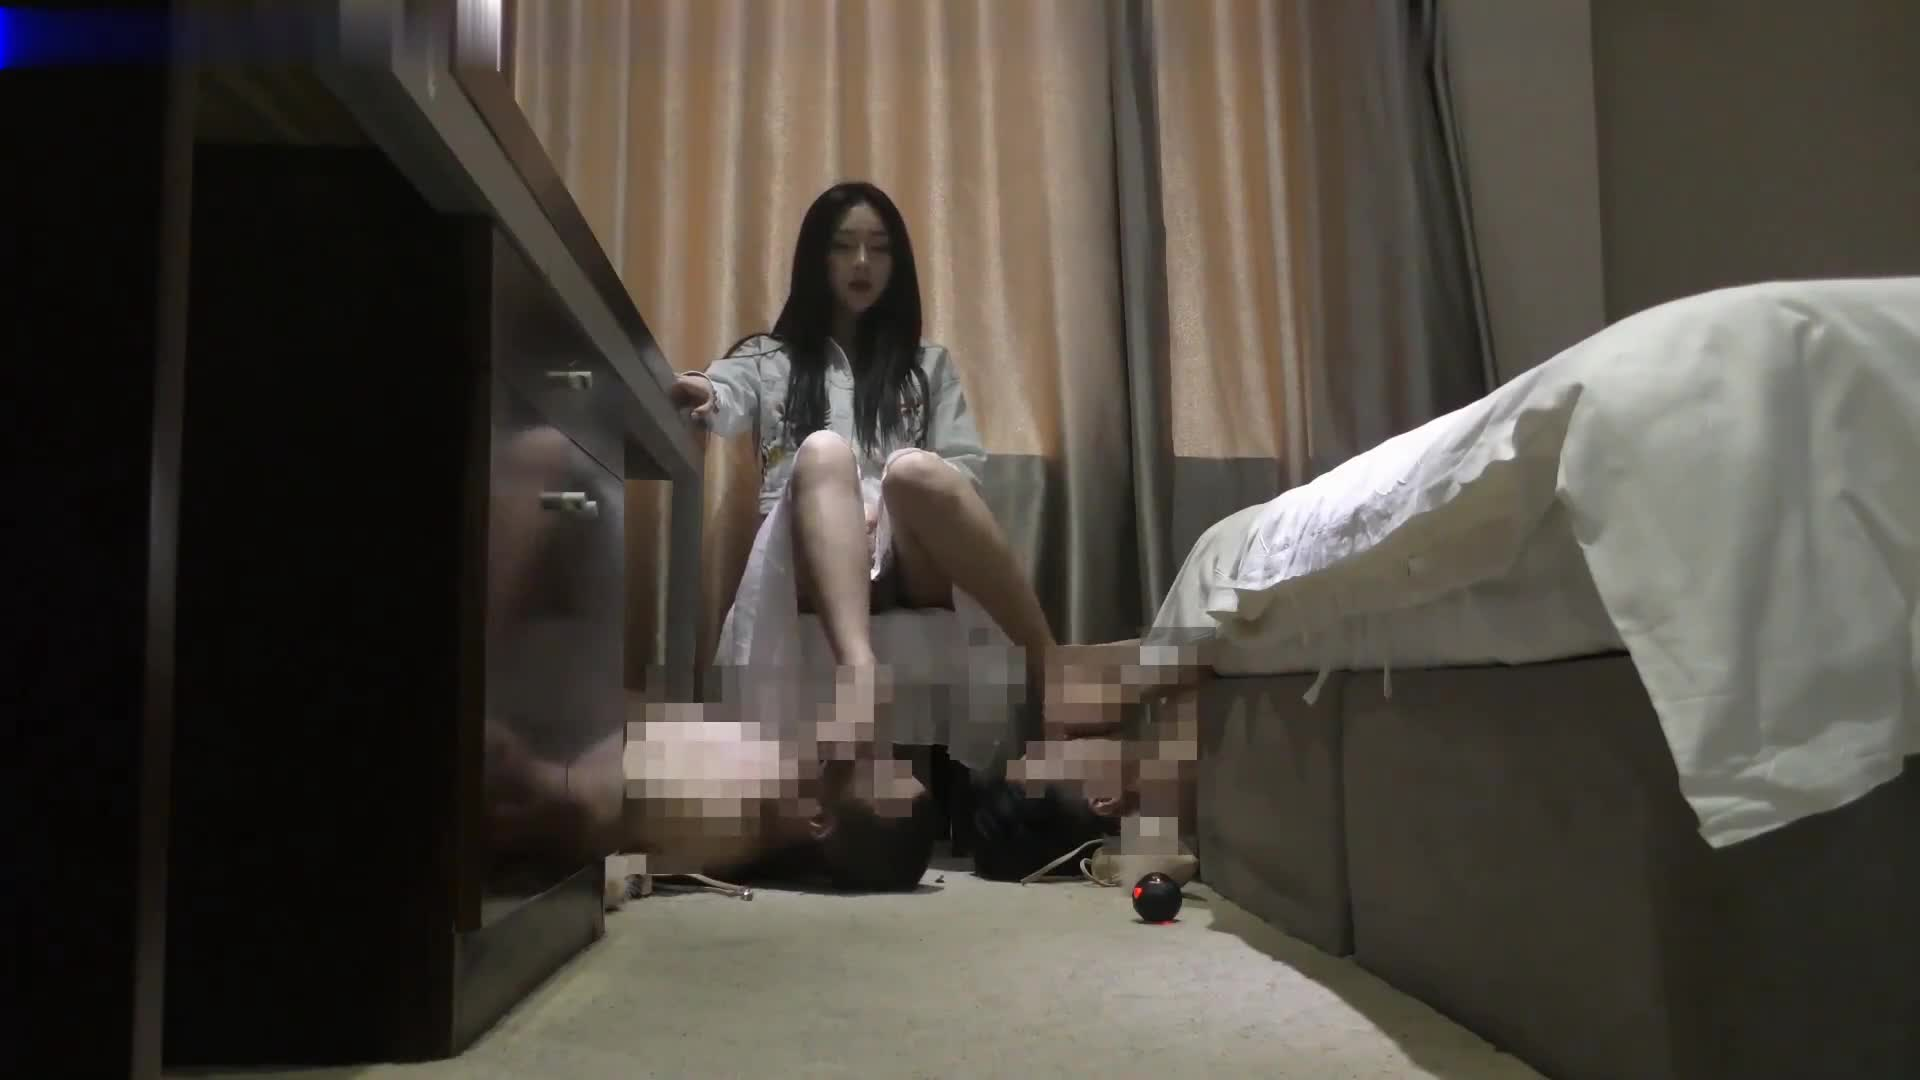 The exclusive foot slave of the student queen